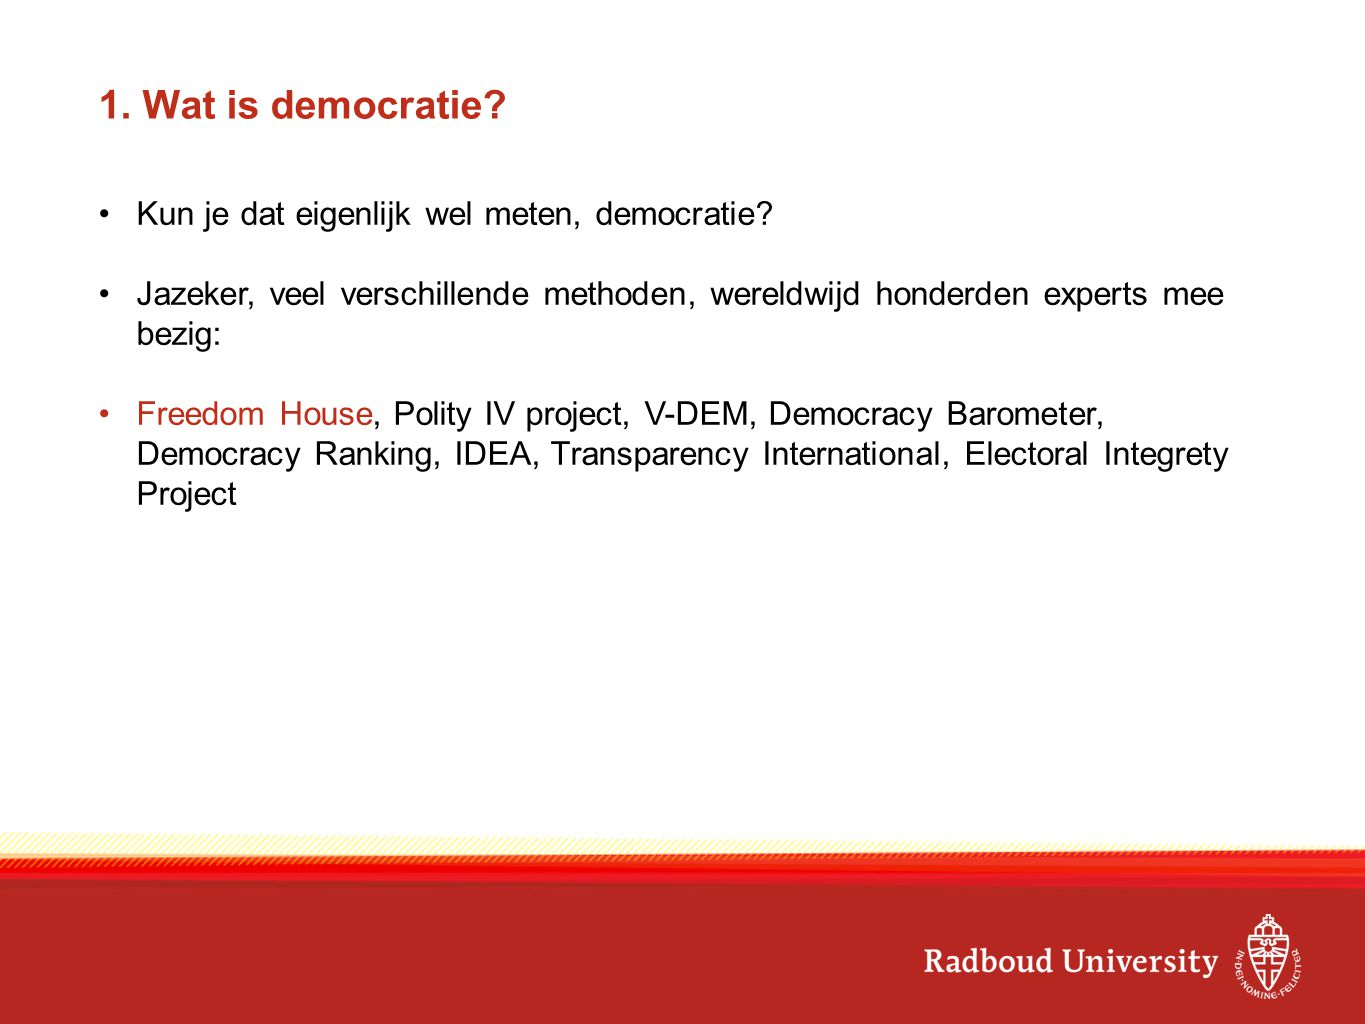 1. Waar is democratie?